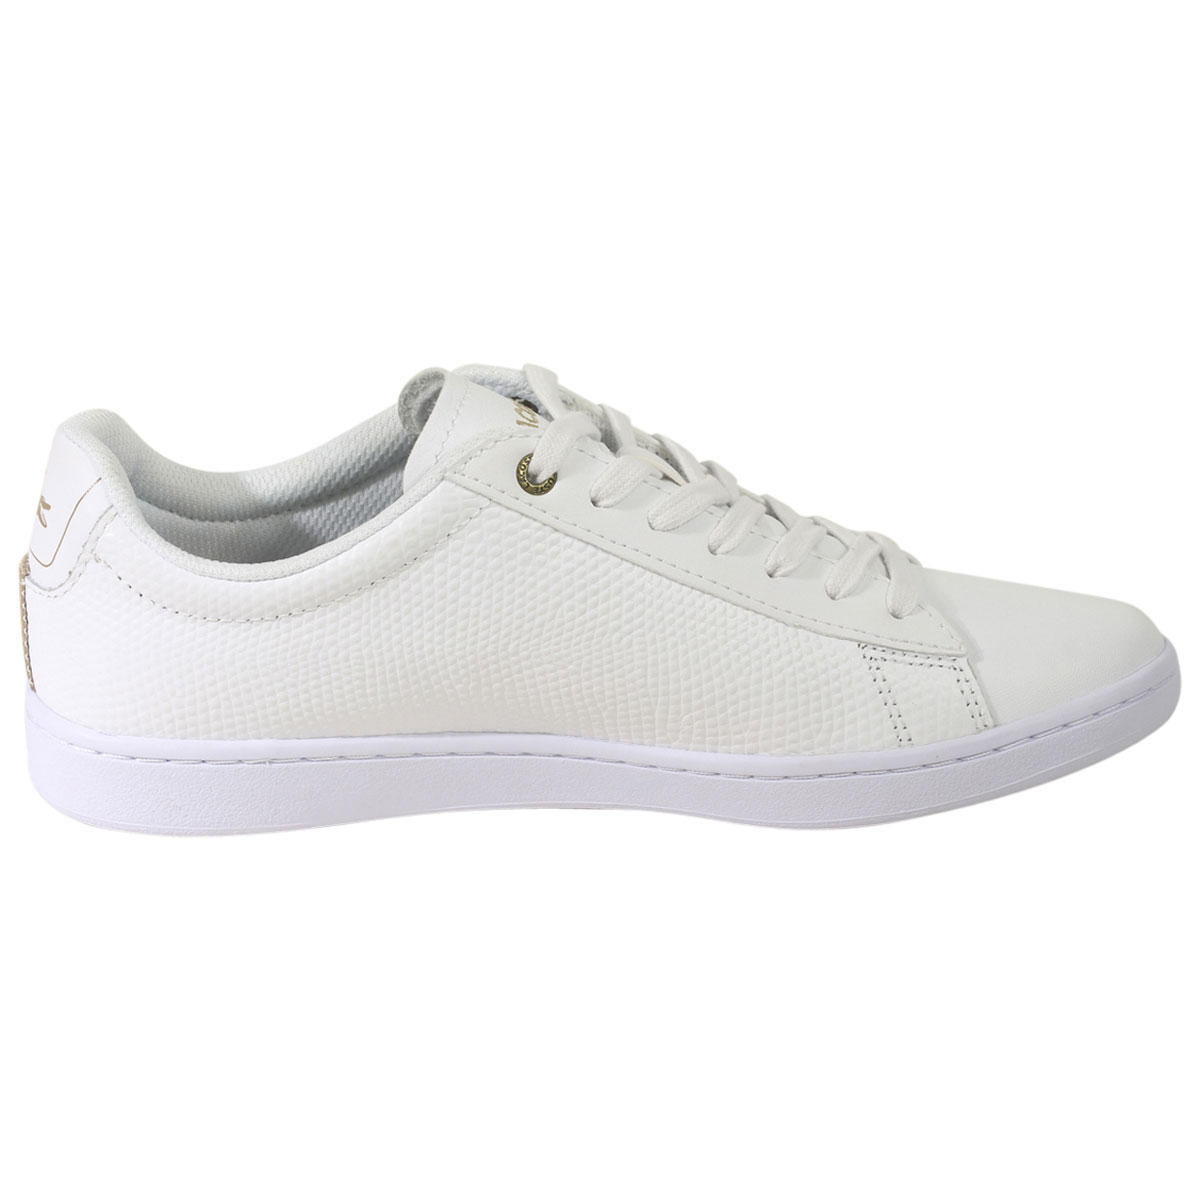 Lacoste-Men-039-s-Carnaby-EVO-118-Trainers-Sneakers-Shoes thumbnail 26